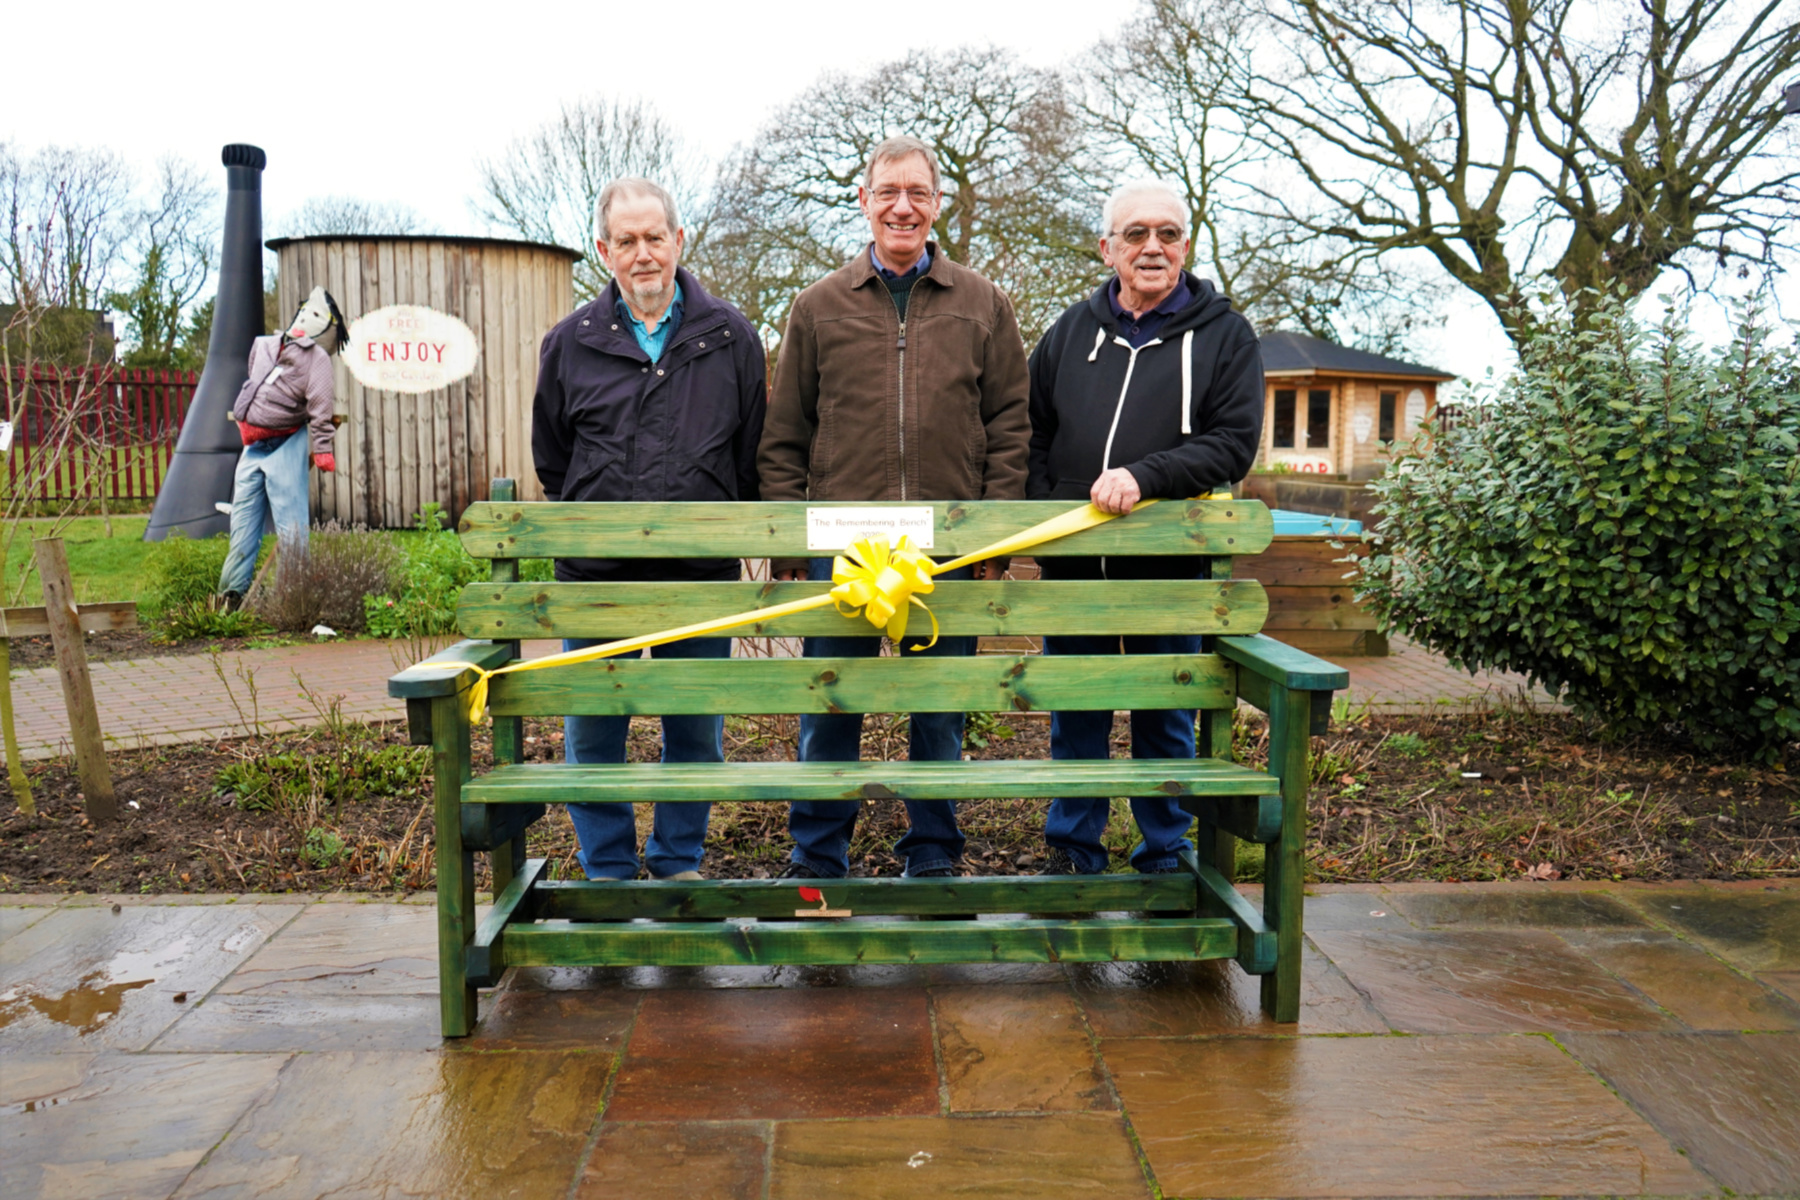 Community Shed members at the unveiling of the Remembering bench